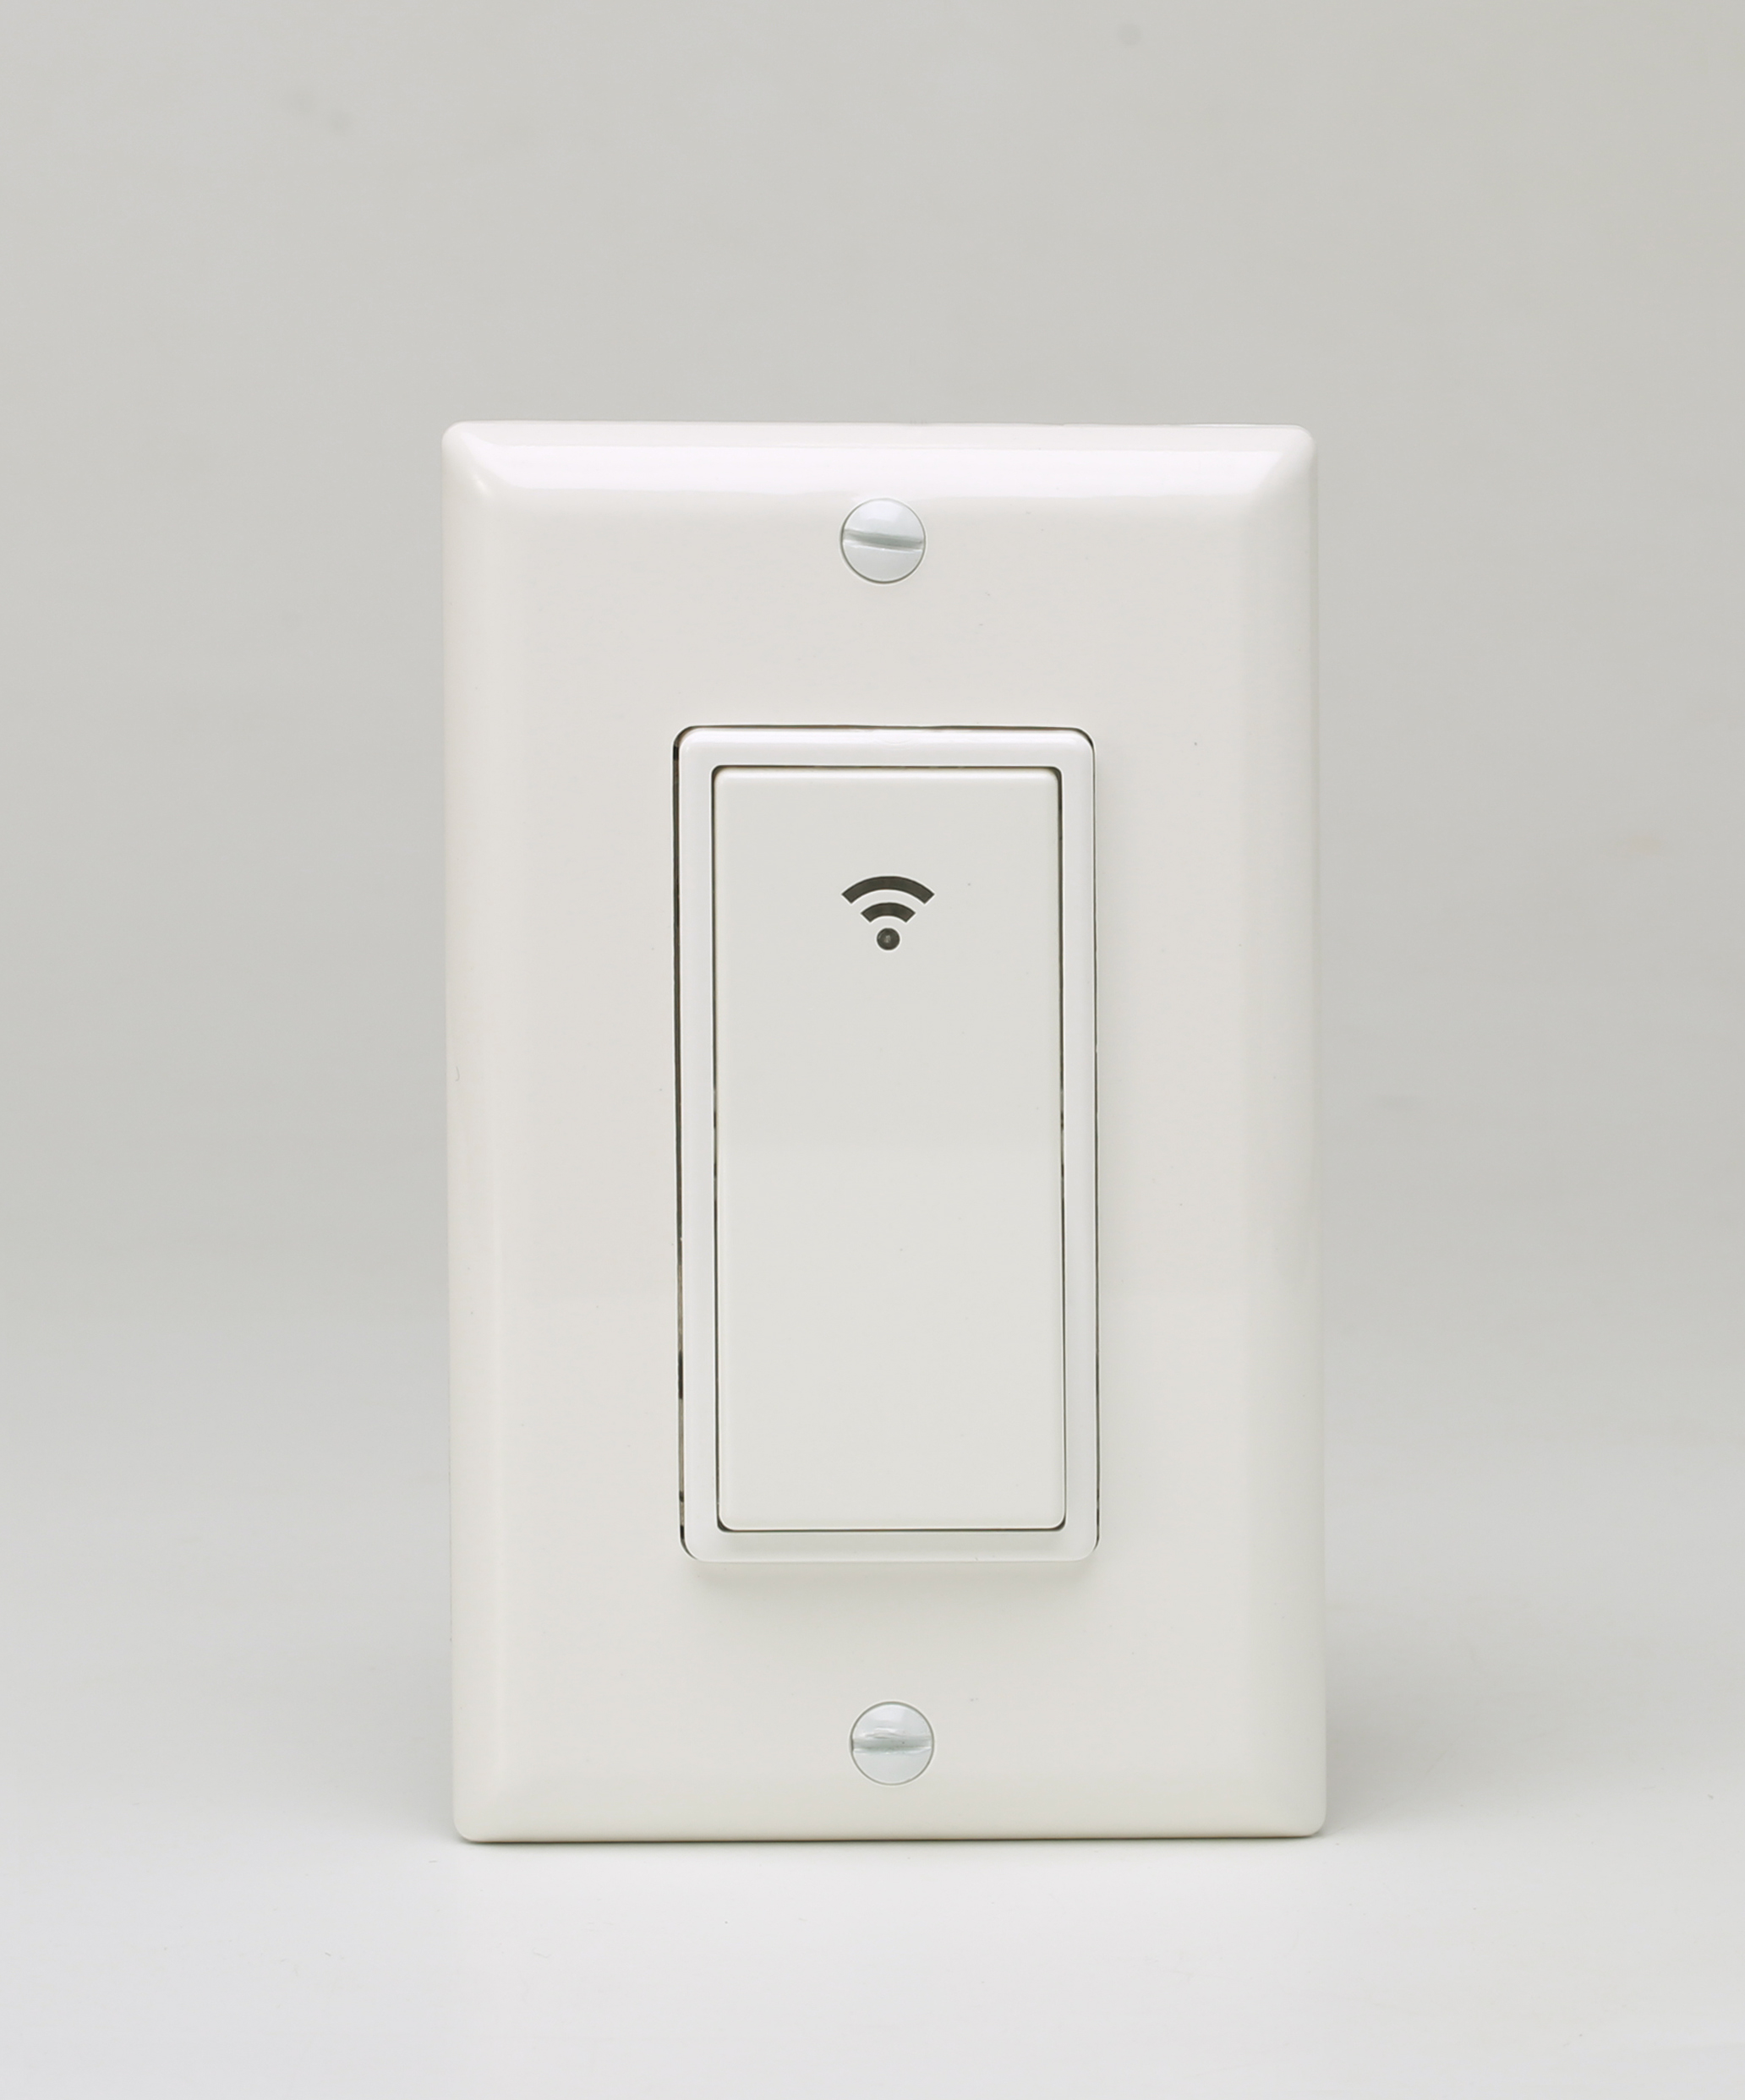 Wholesale x 10 light switch - Online Buy Best x 10 light switch from ...